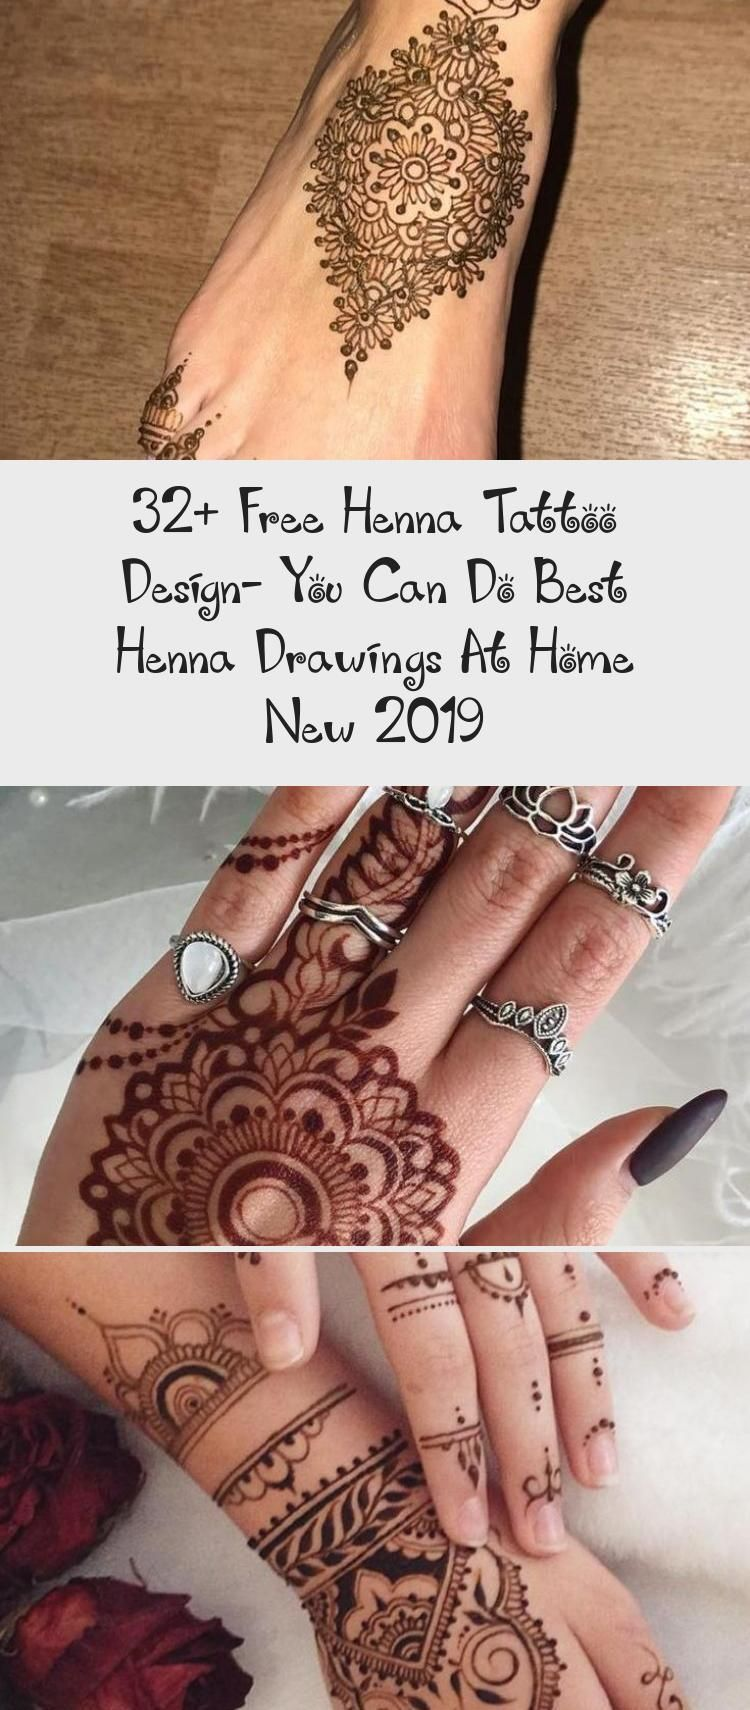 32 Free Henna Tattoo Design You Can Do Best Henna Drawings At Home New 2019 Tattoos And Body Art In 2020 Henna Drawings Henna Tattoo Henna Tattoo Designs